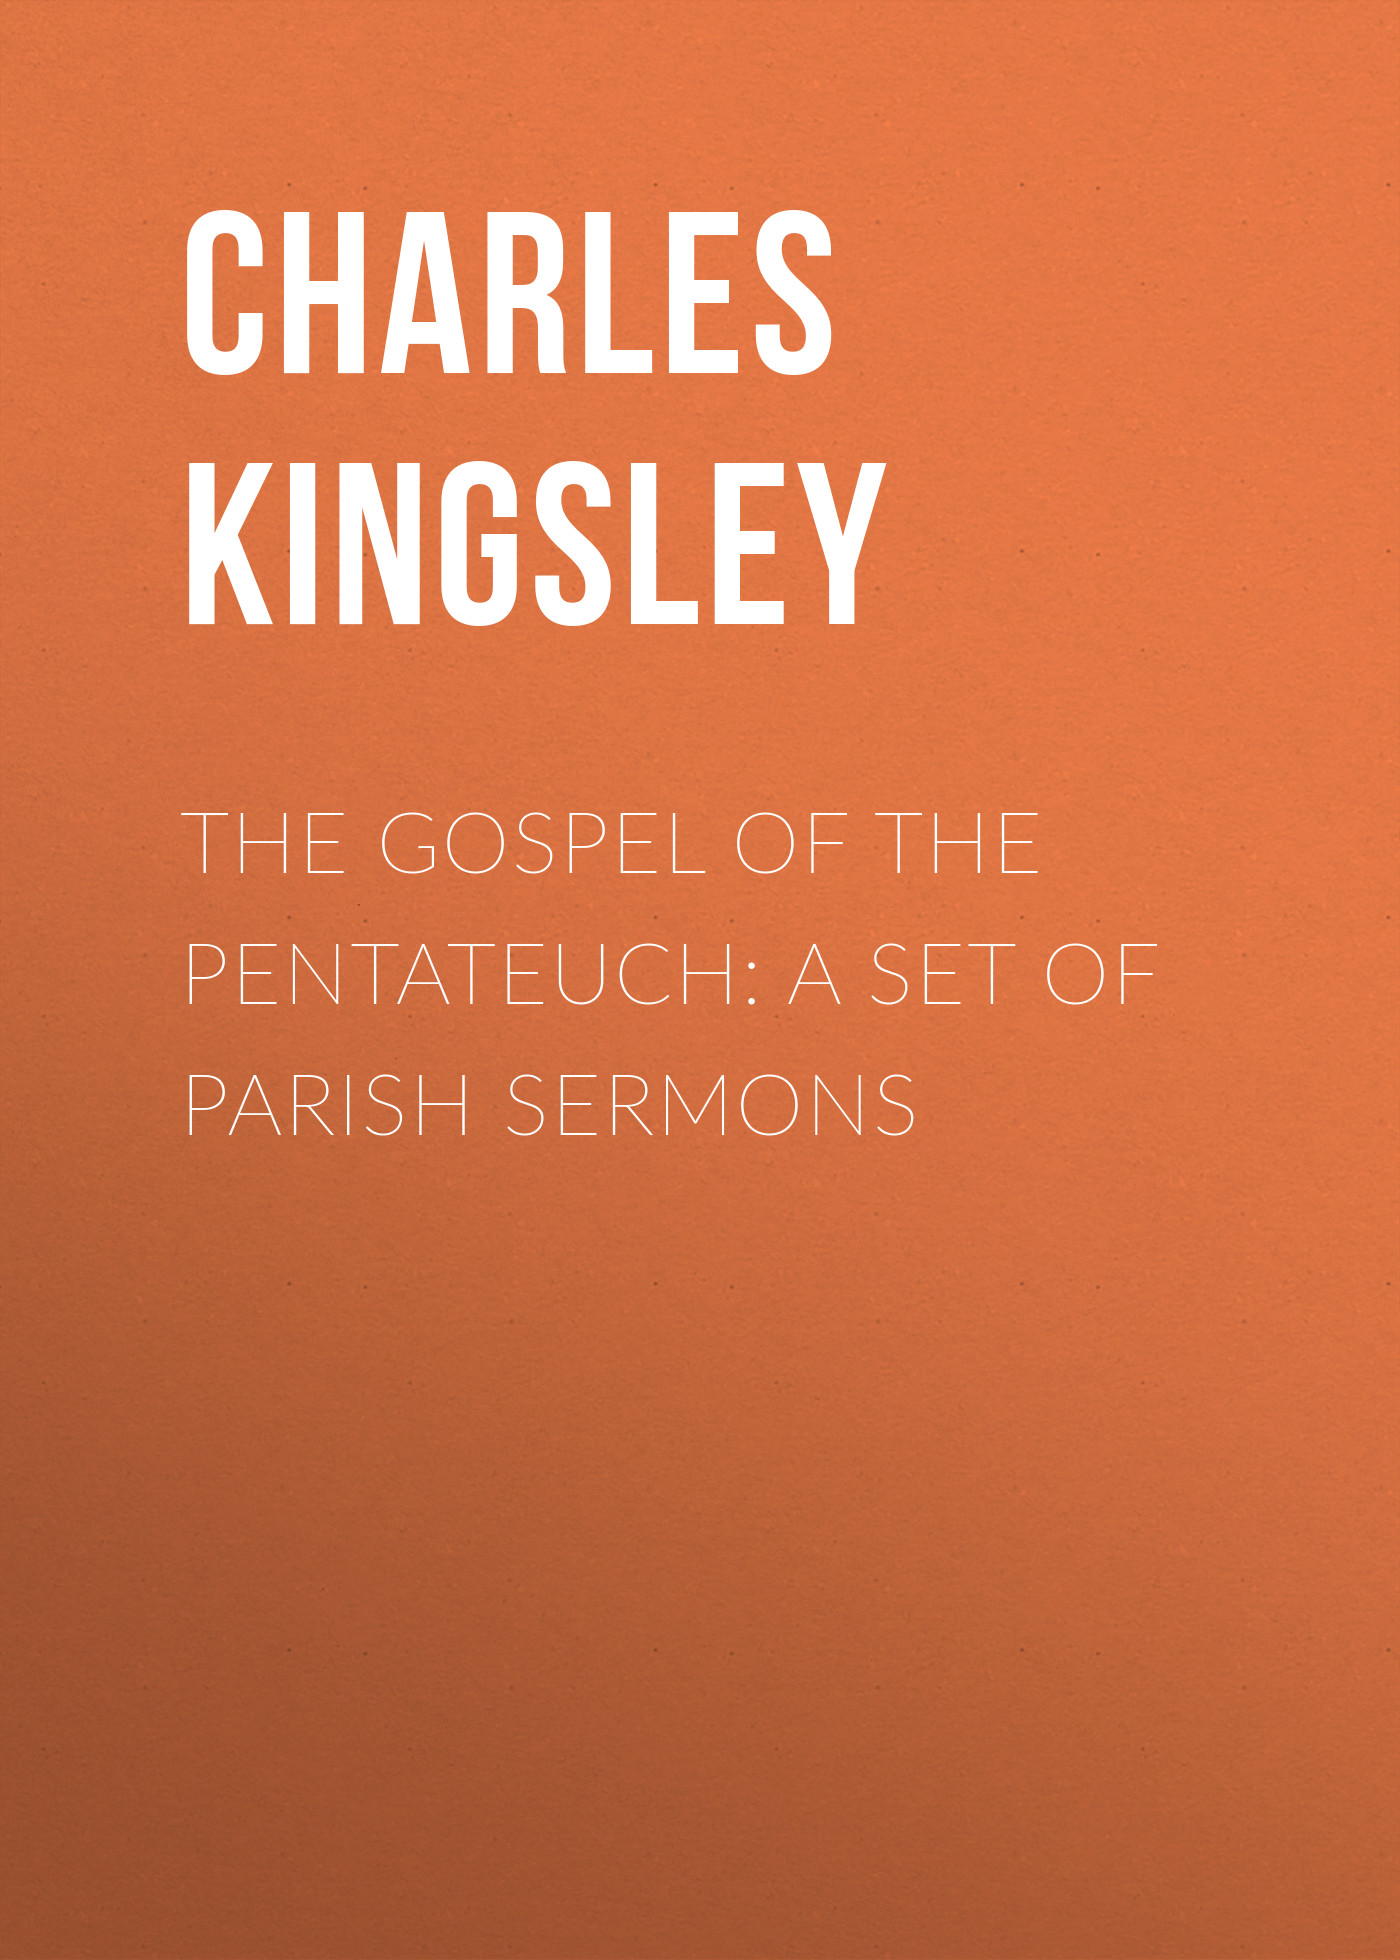 Charles Kingsley The Gospel of the Pentateuch: A Set of Parish Sermons the boyer brothers the hendrix singers the silvertone singers young gospel singers the sermonairs the waldo singers sons of the south the jewel gospel aires the best of excello gospel